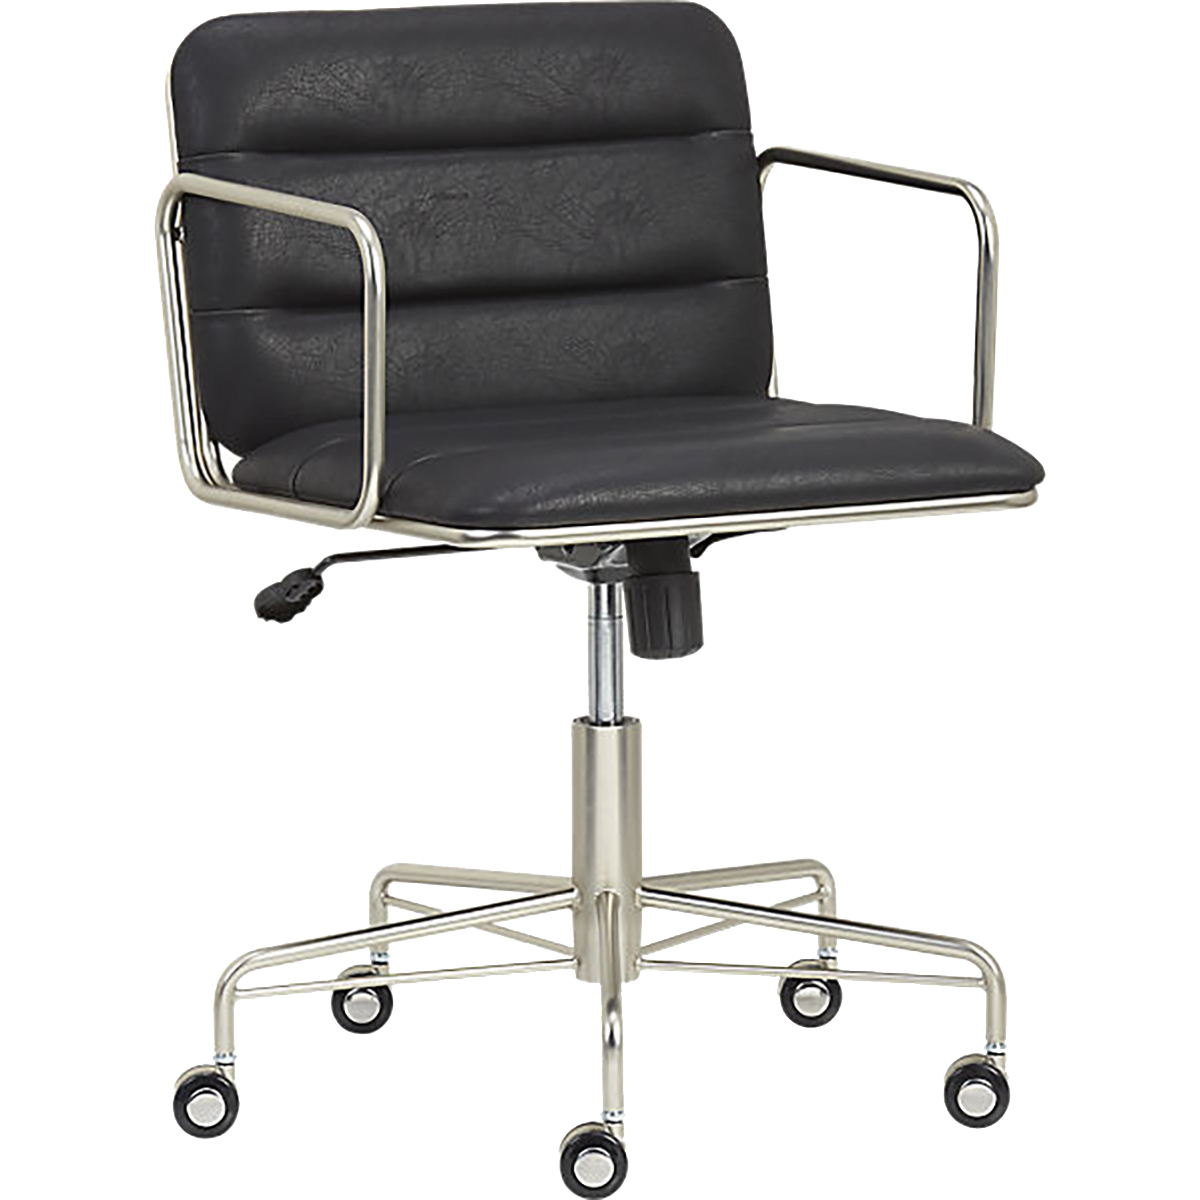 mad-office-chair